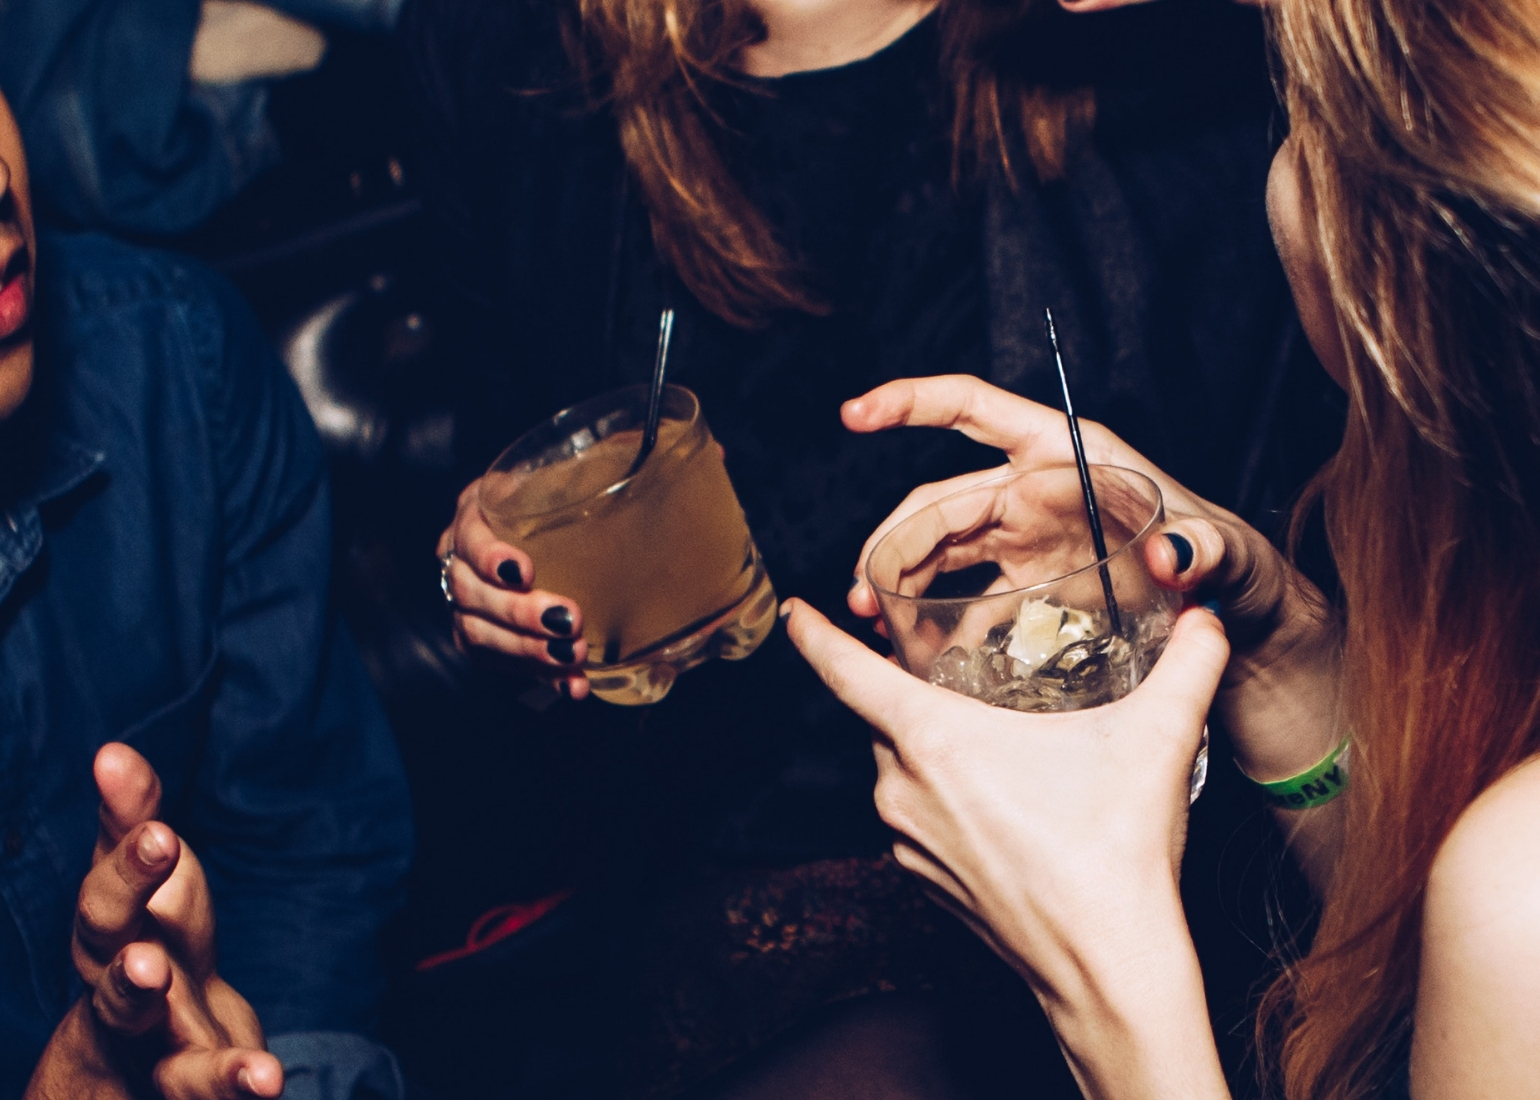 Dangers of mixing work parties and social media